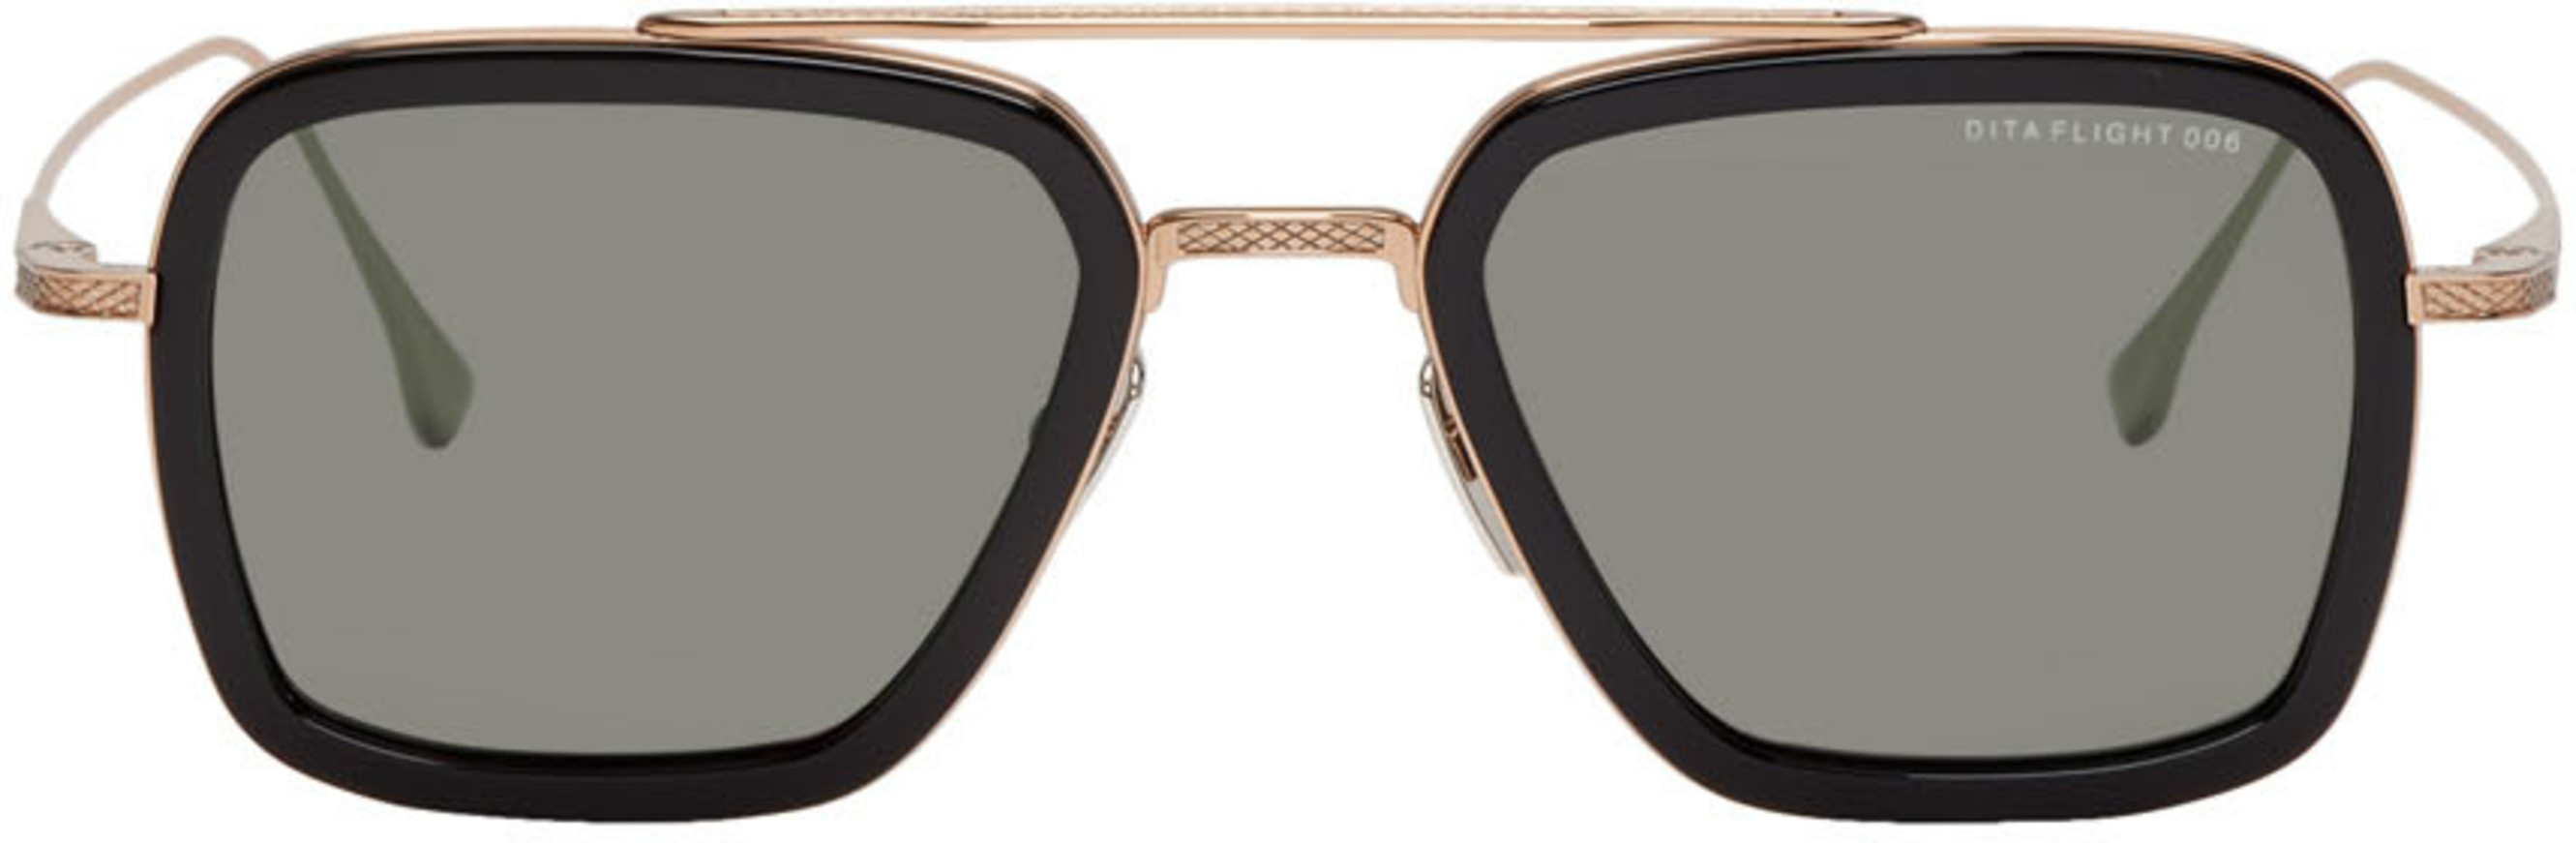 9ad796160fe1 Dita for Men SS19 Collection